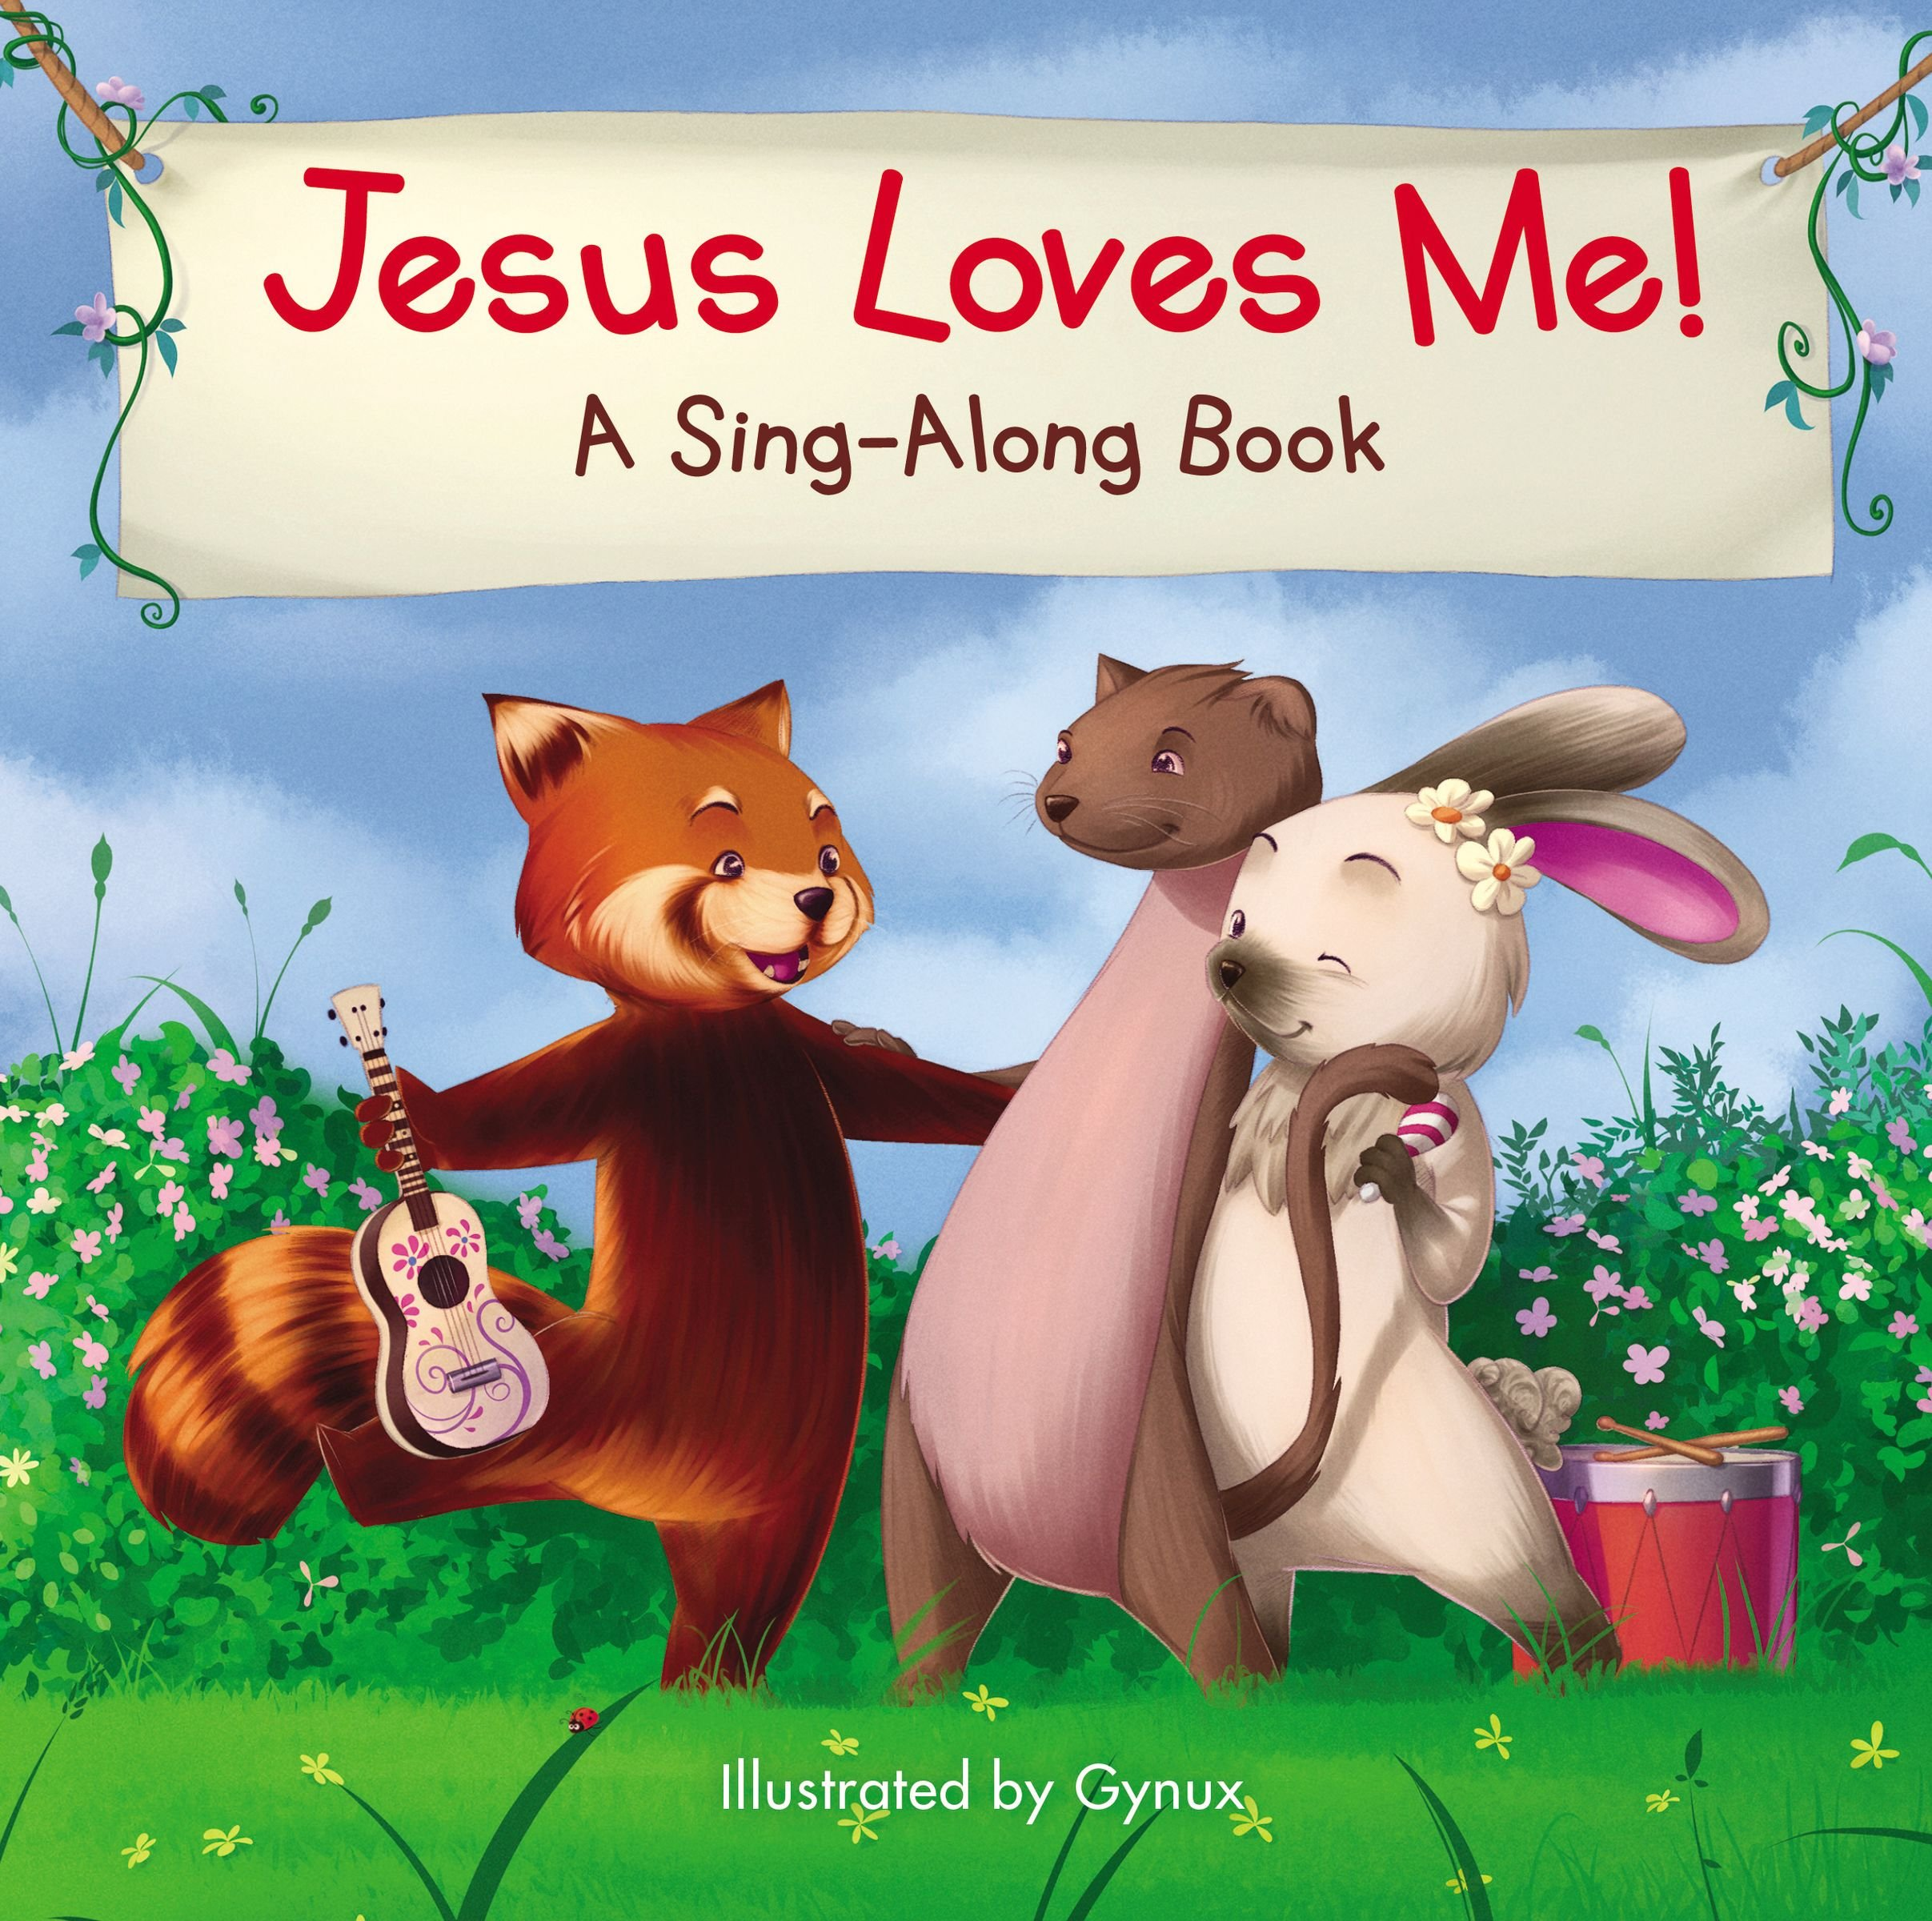 Image result for Jesus Loves Me! A Sing-Along Book illustrated by Gynux